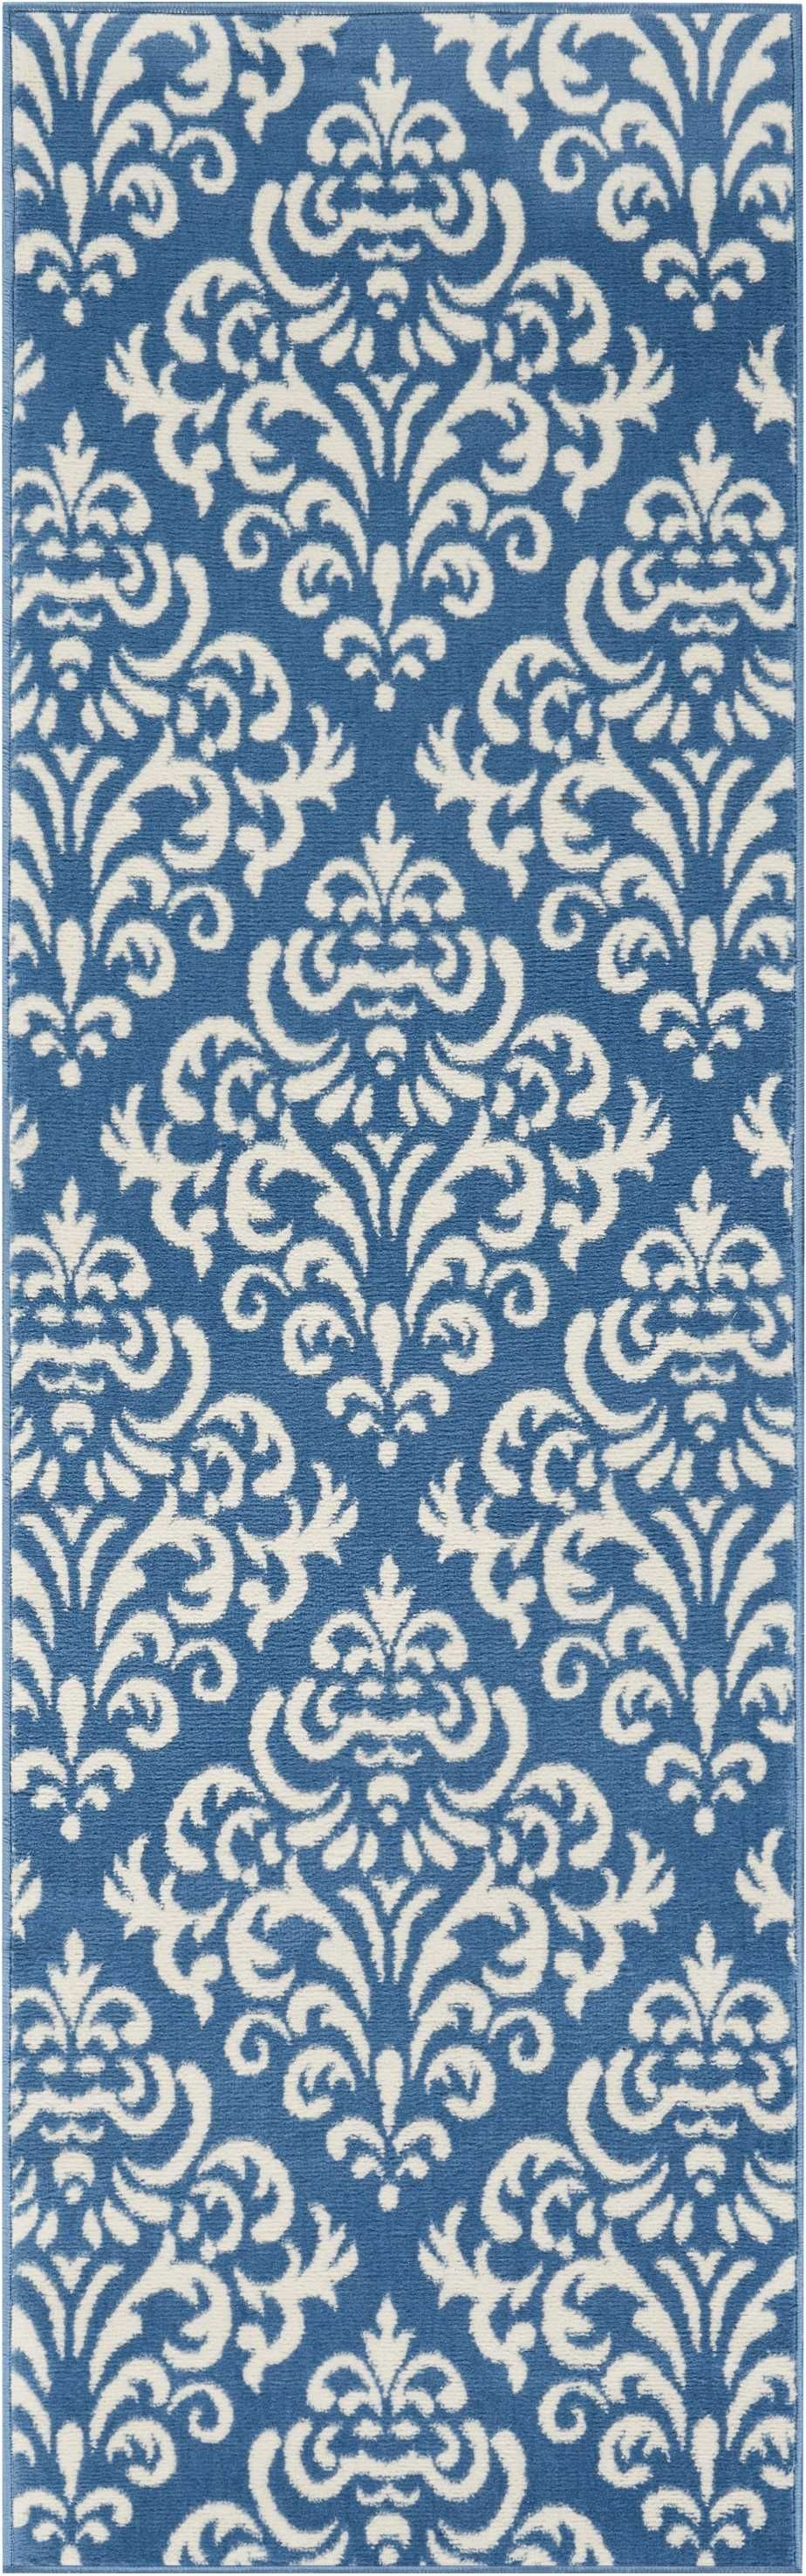 Grafix GRF06 Blue Area Rug-Area Rug-Nourison-The Rug Truck